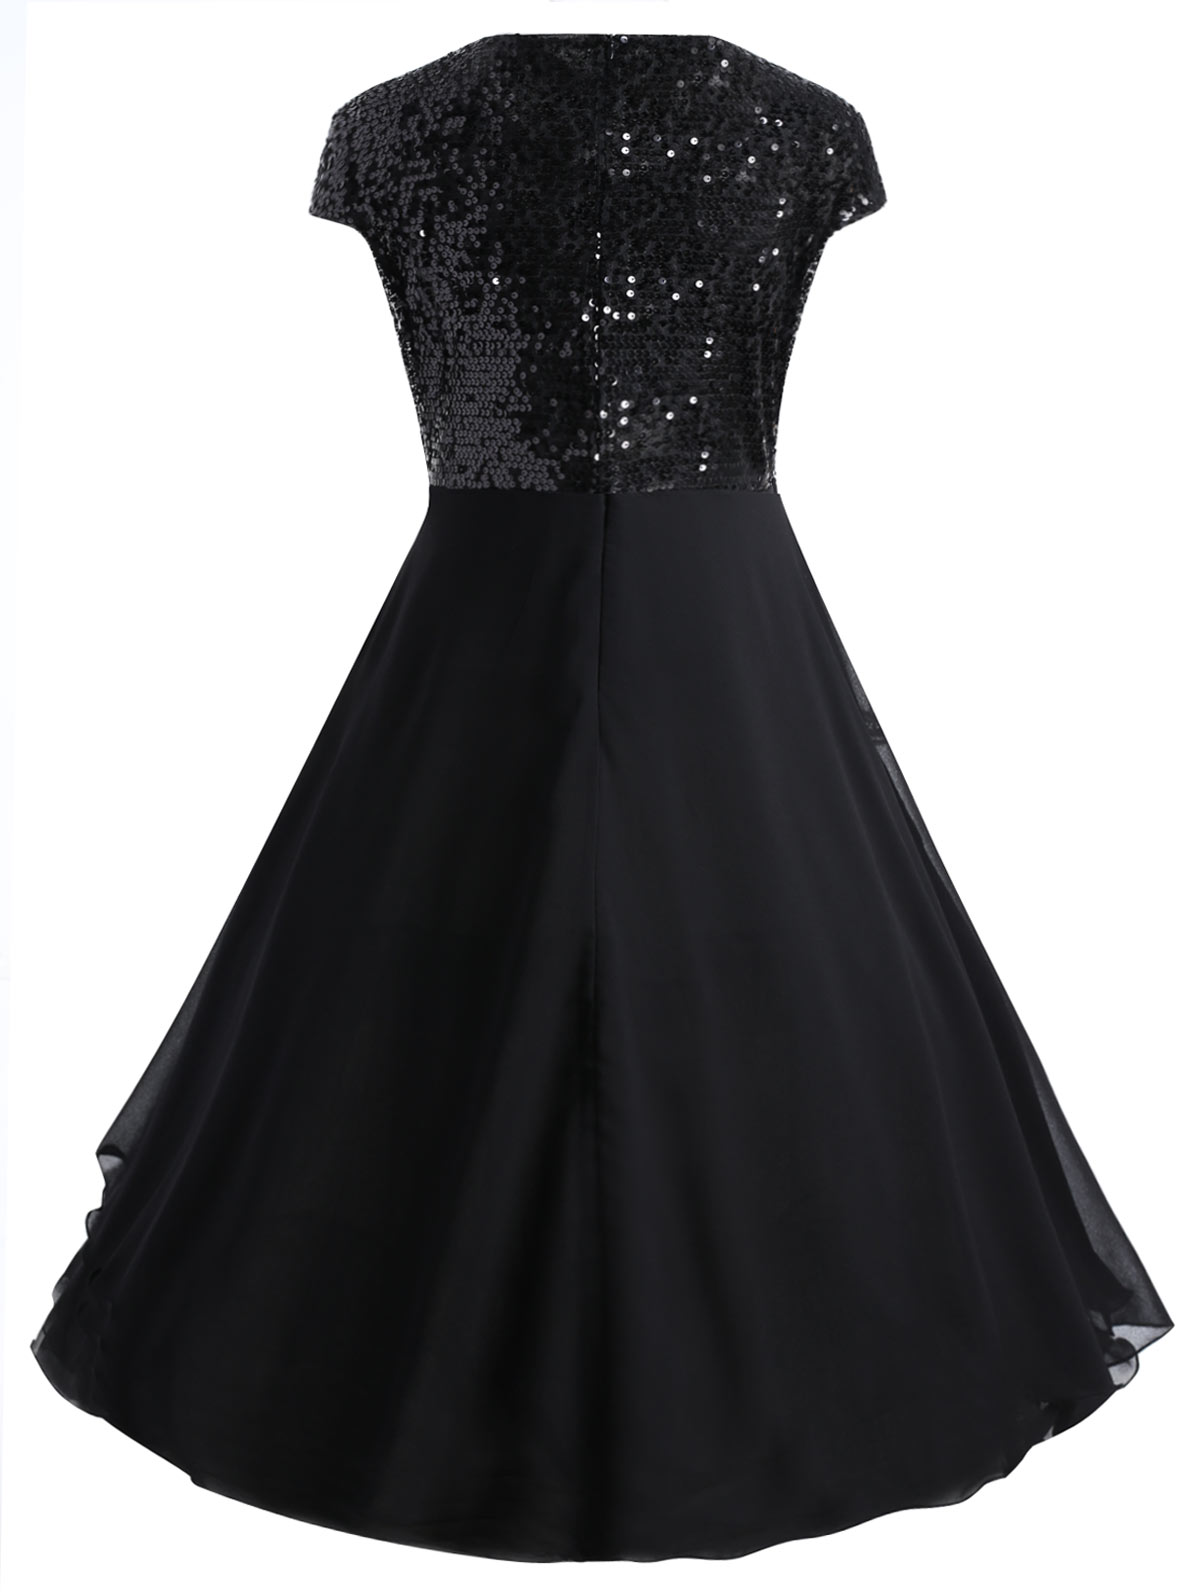 a3df92f8a3 Gamiss Women Flounce Plus Size Dress Sequin Sparkly Dresses Cocktail Short  Sleeves Party Ball Gown Knee-Length Female Vestidos